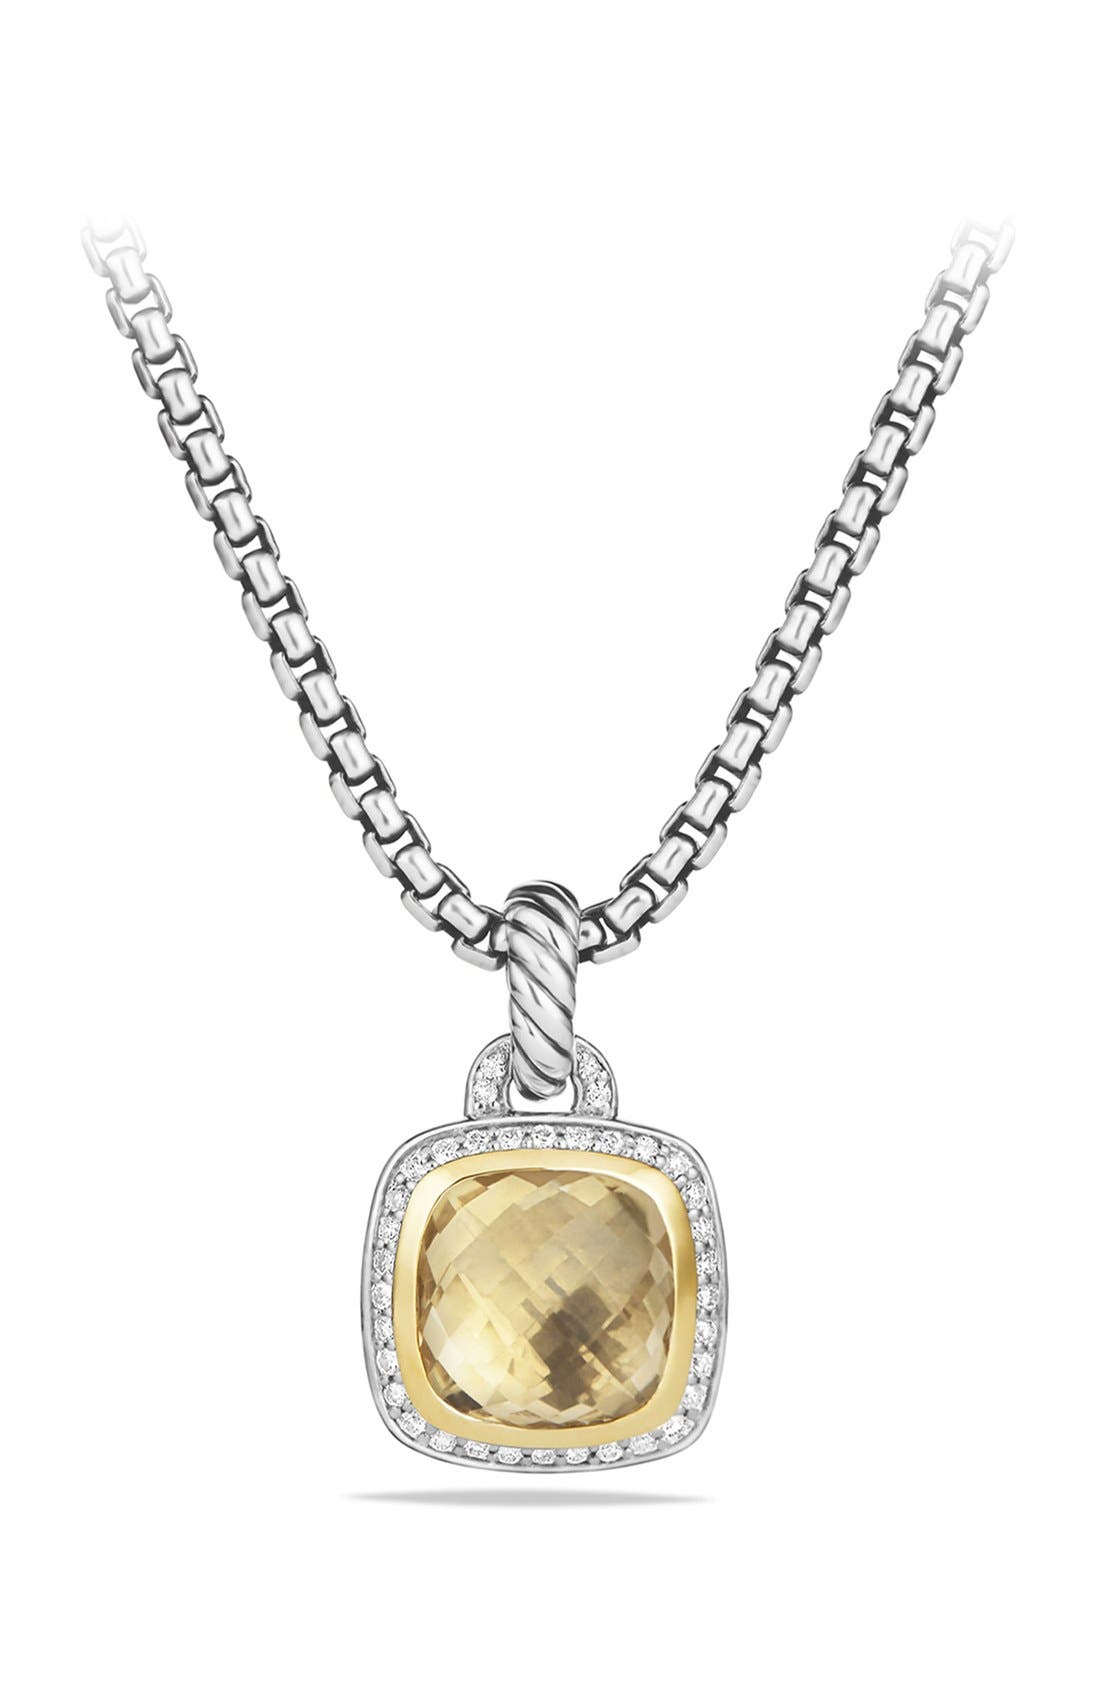 'Albion' Pendant with Diamonds and 18K Gold,                         Main,                         color, Champagne Citrine